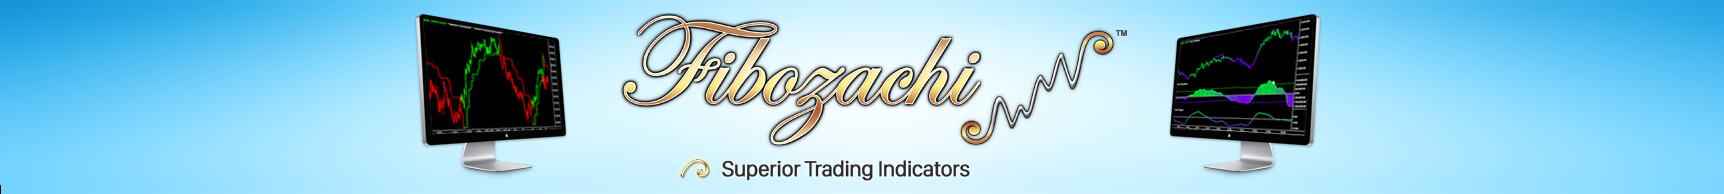 Fibozachi - Superior Trading Indicators